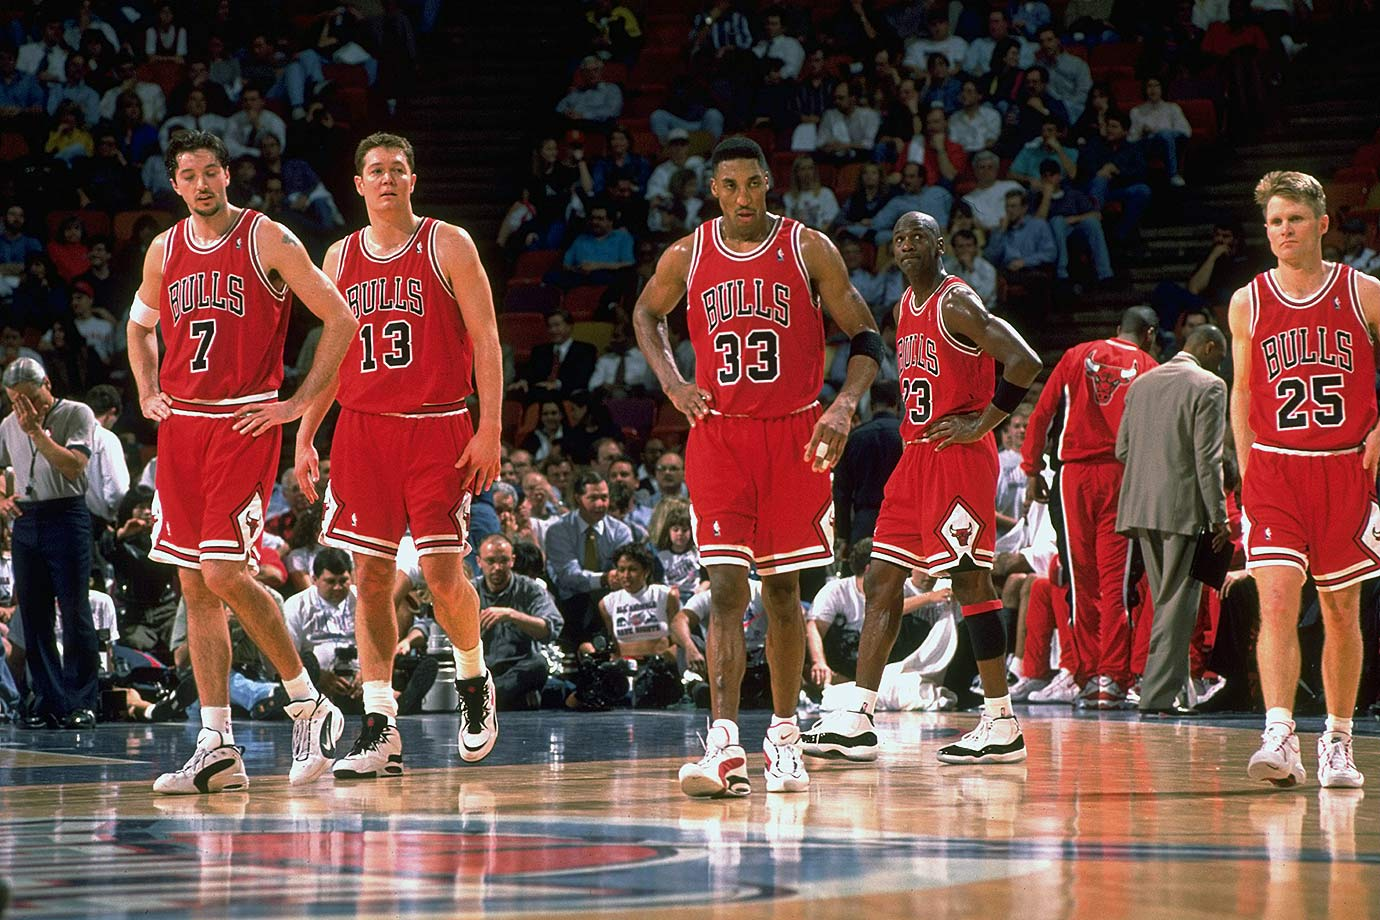 January 30, 1996 — Chicago Bulls vs. Houston Rockets